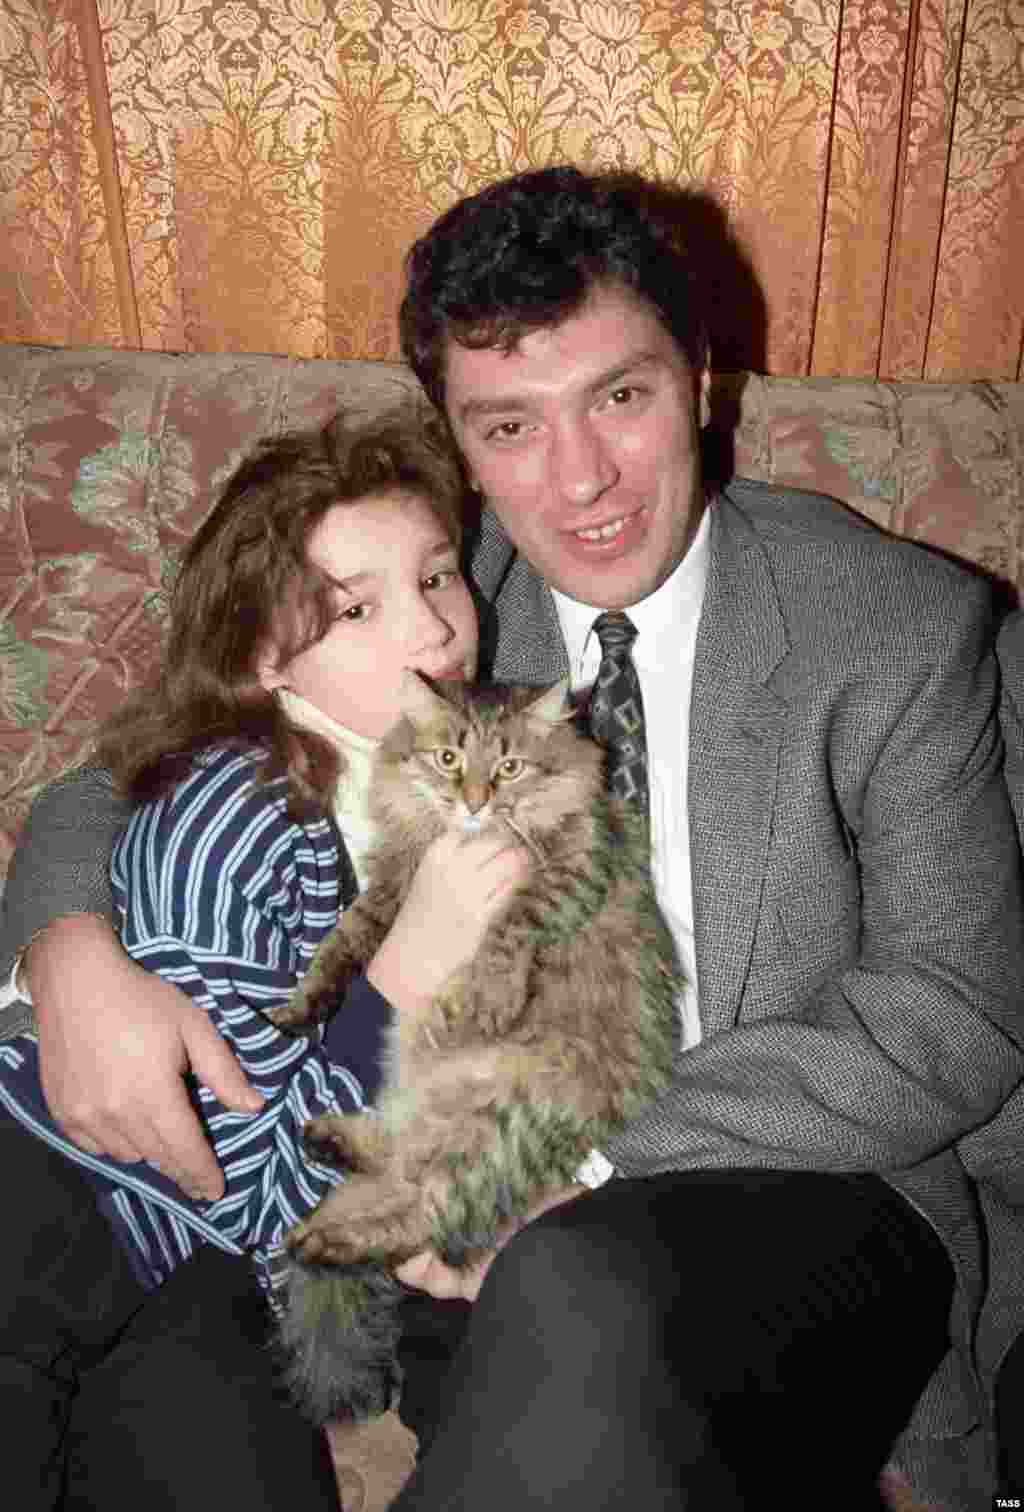 Nemtsov with his daughter Zhanna in 1996.